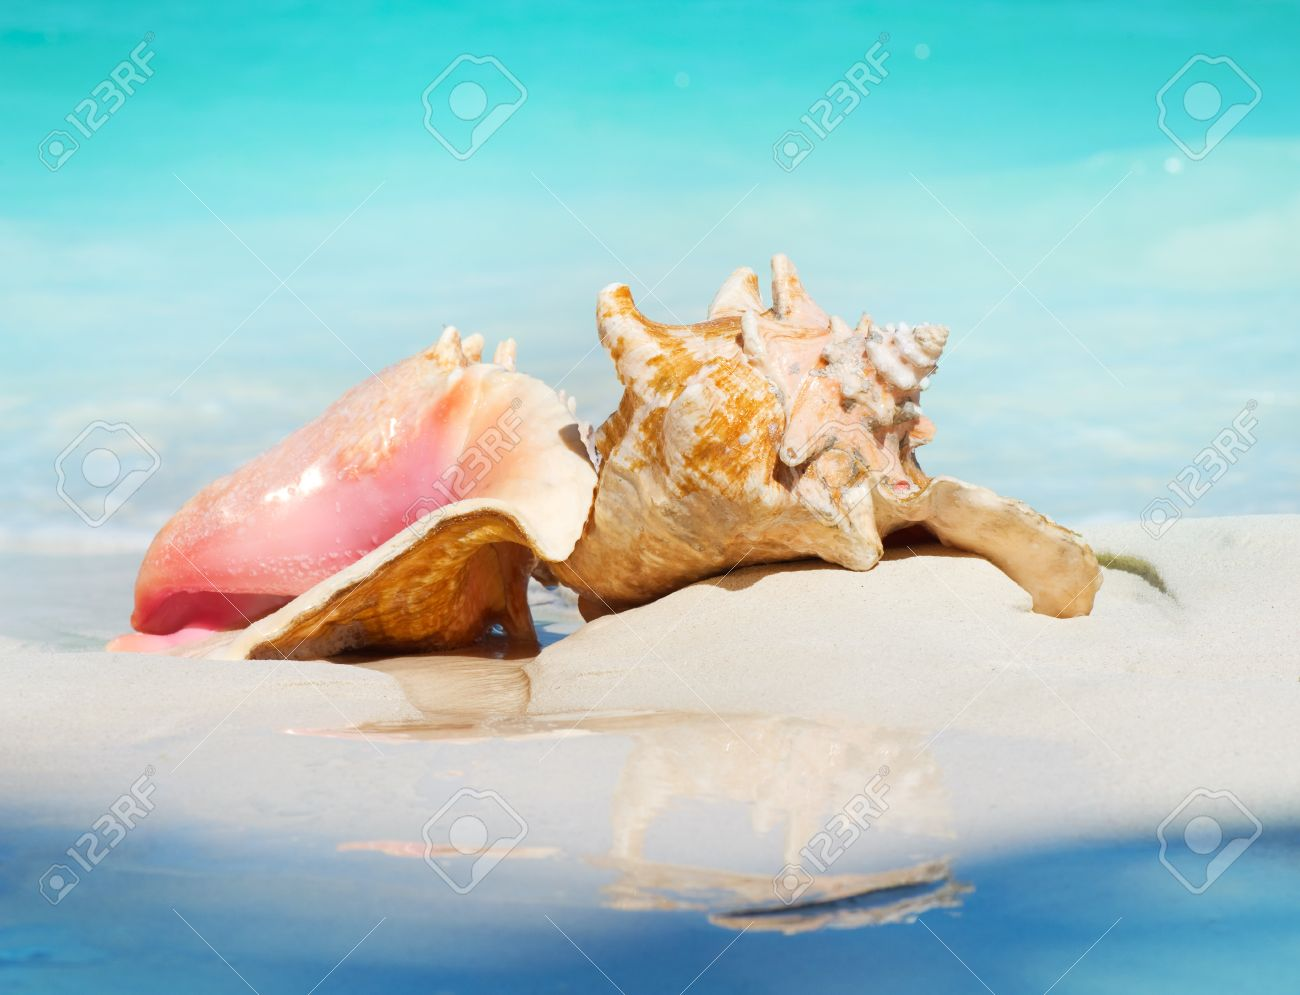 Conch Stock Photos Royalty Free Conch Images